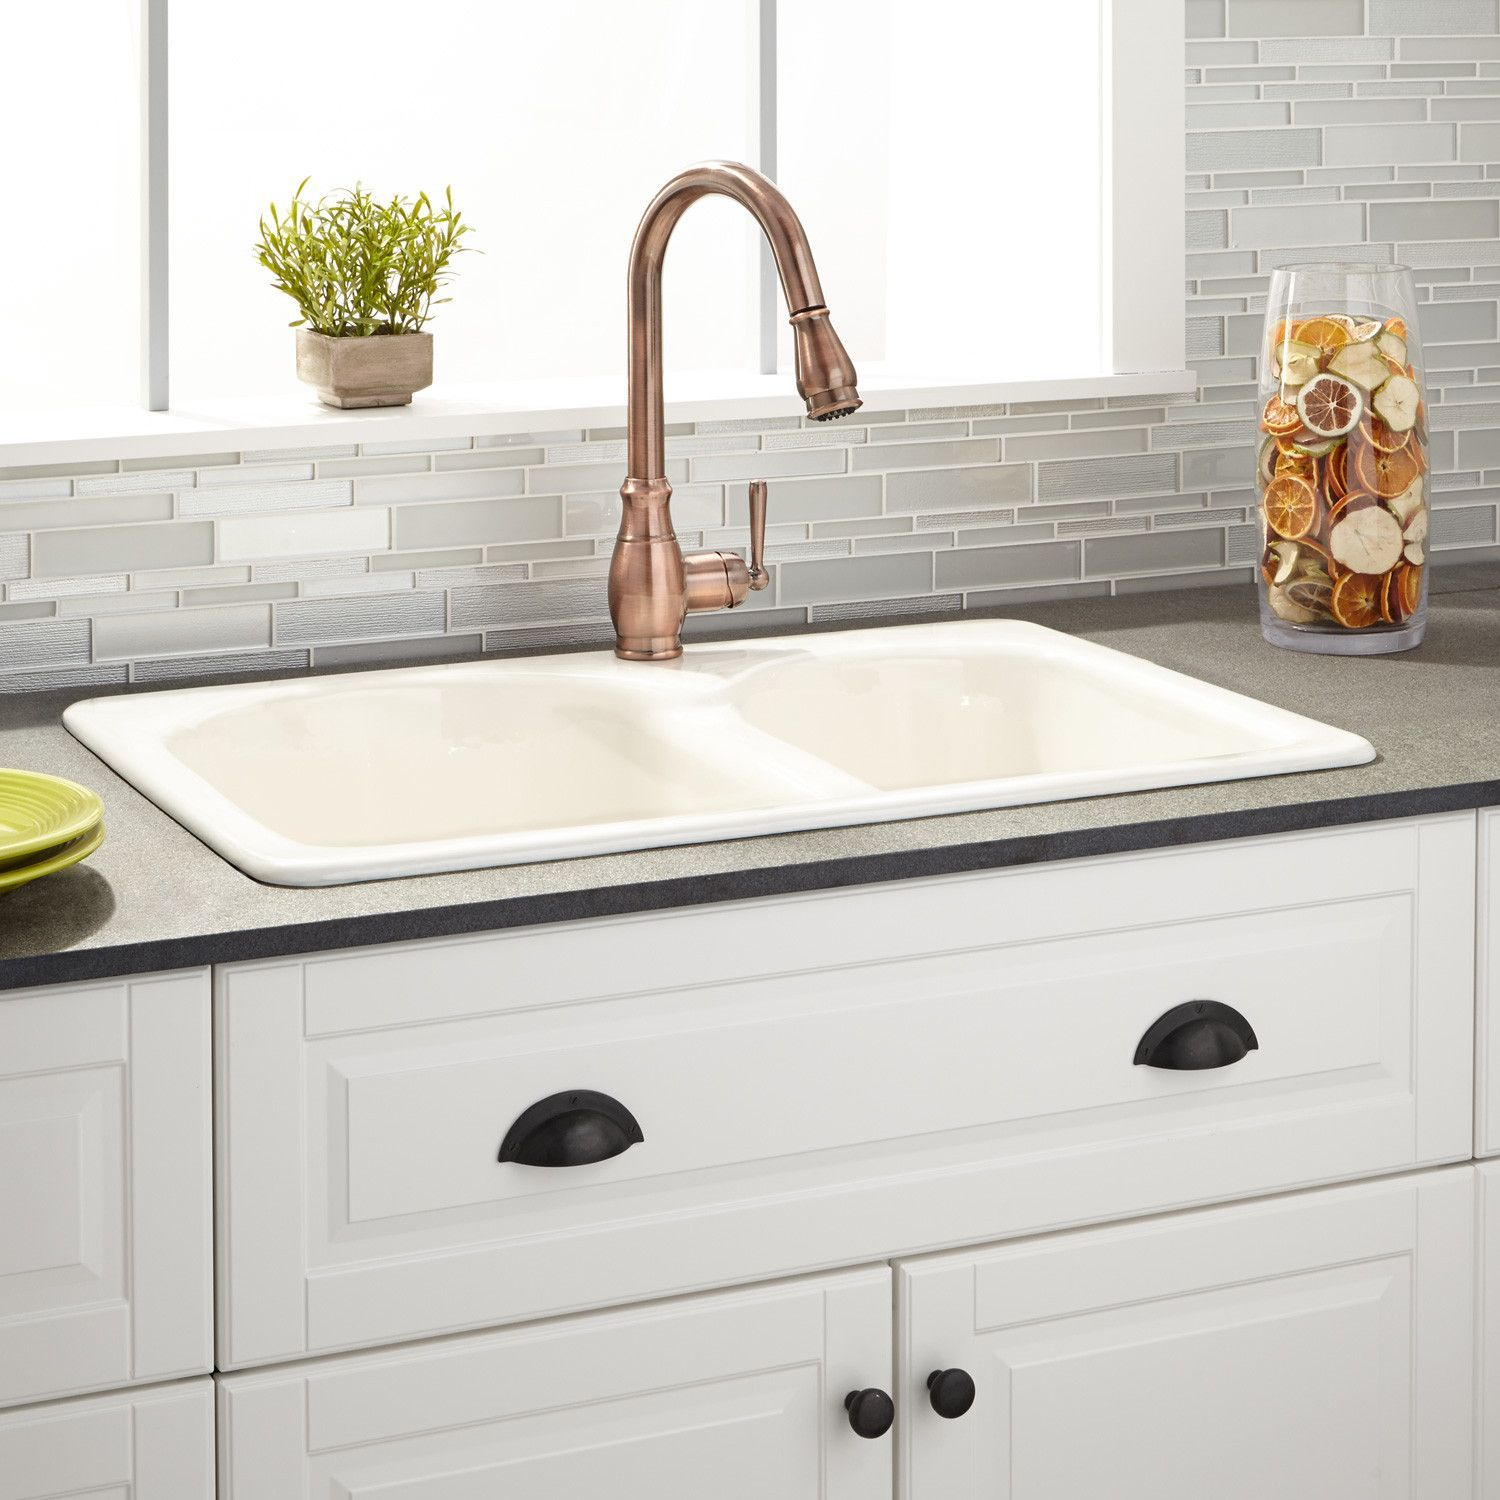 33 Cayton 70 30 Offset Double Bowl Cast Iron Drop In Kitchen Sink White Drop In Kitchen Sink Cast Iron Kitchen Sinks Sink